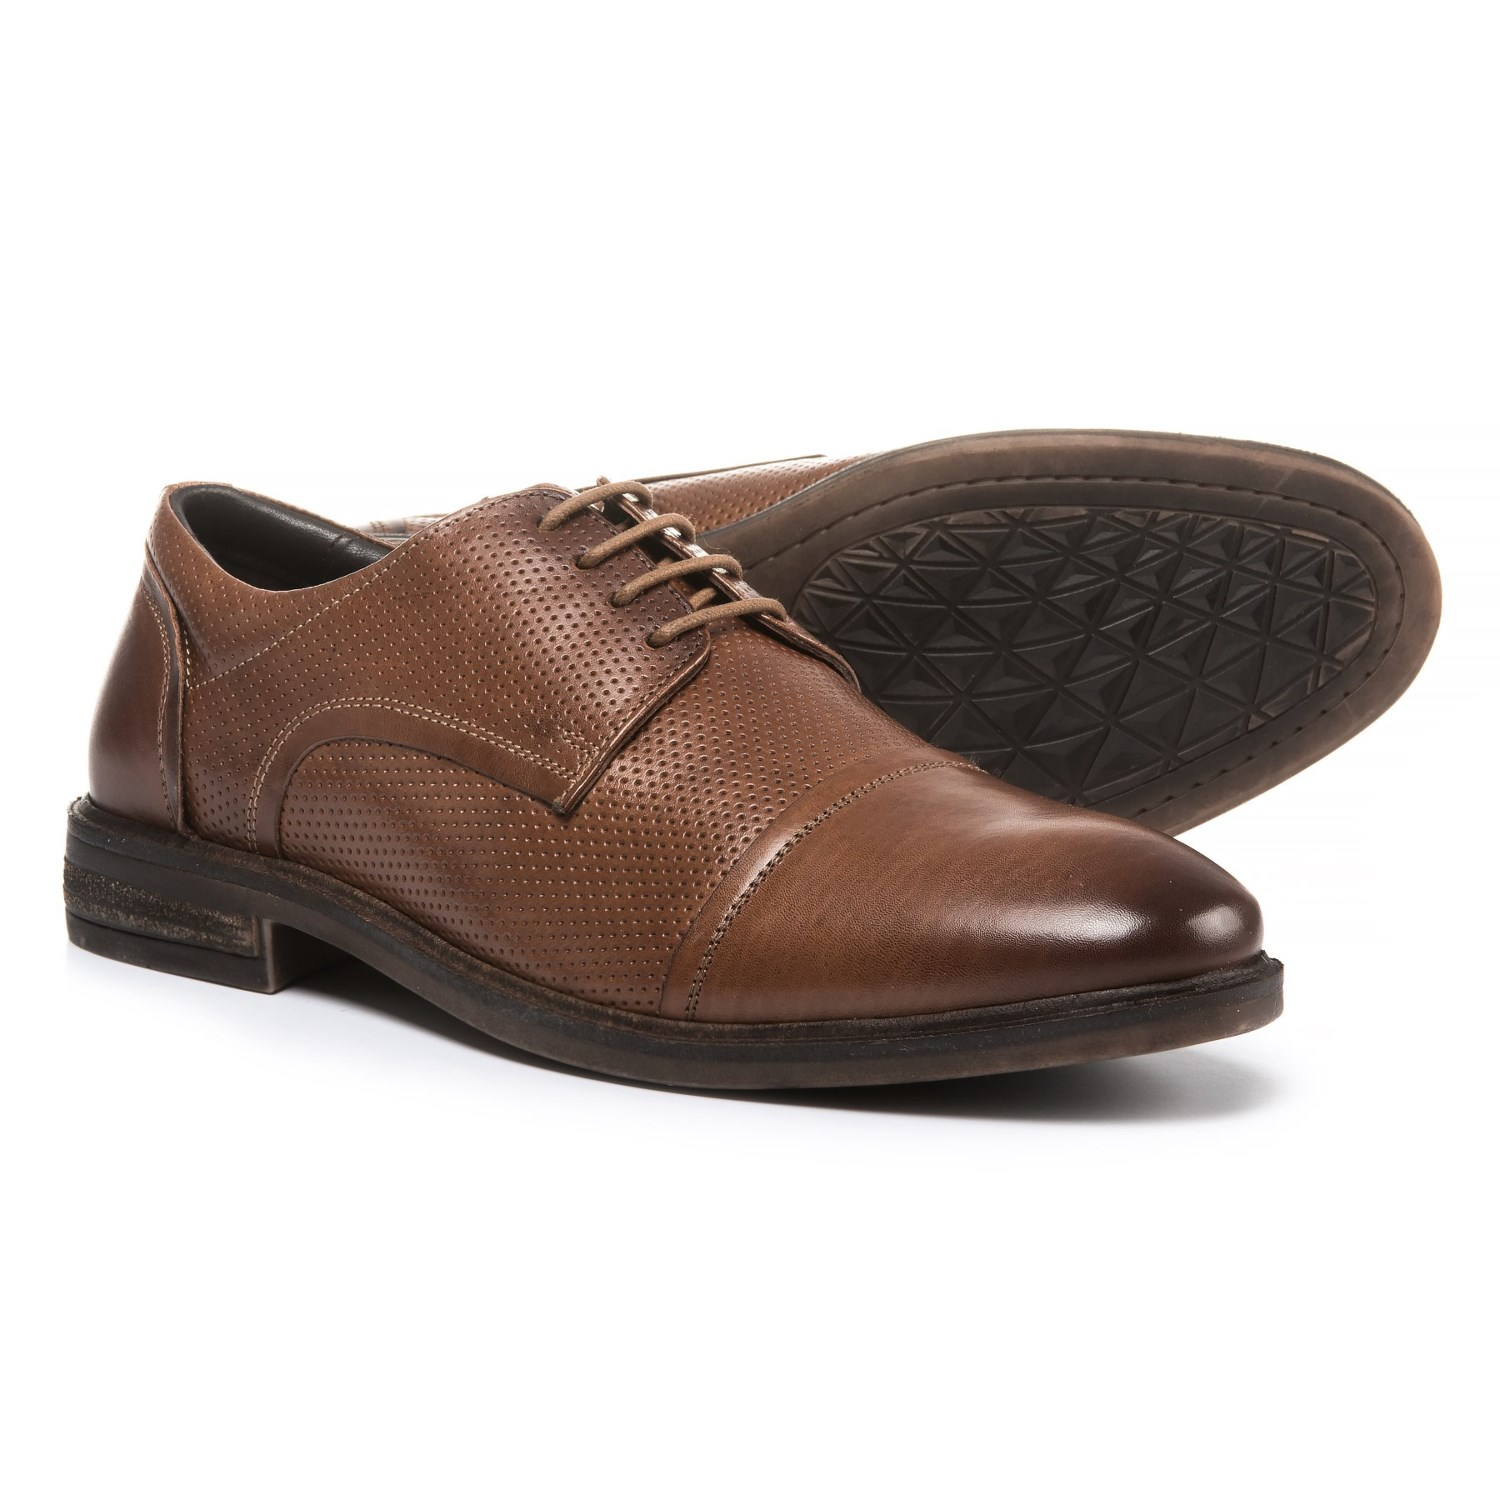 Josef Seibel Made in Germany Myles 05 CapToe Oxford Shoes  Leather For